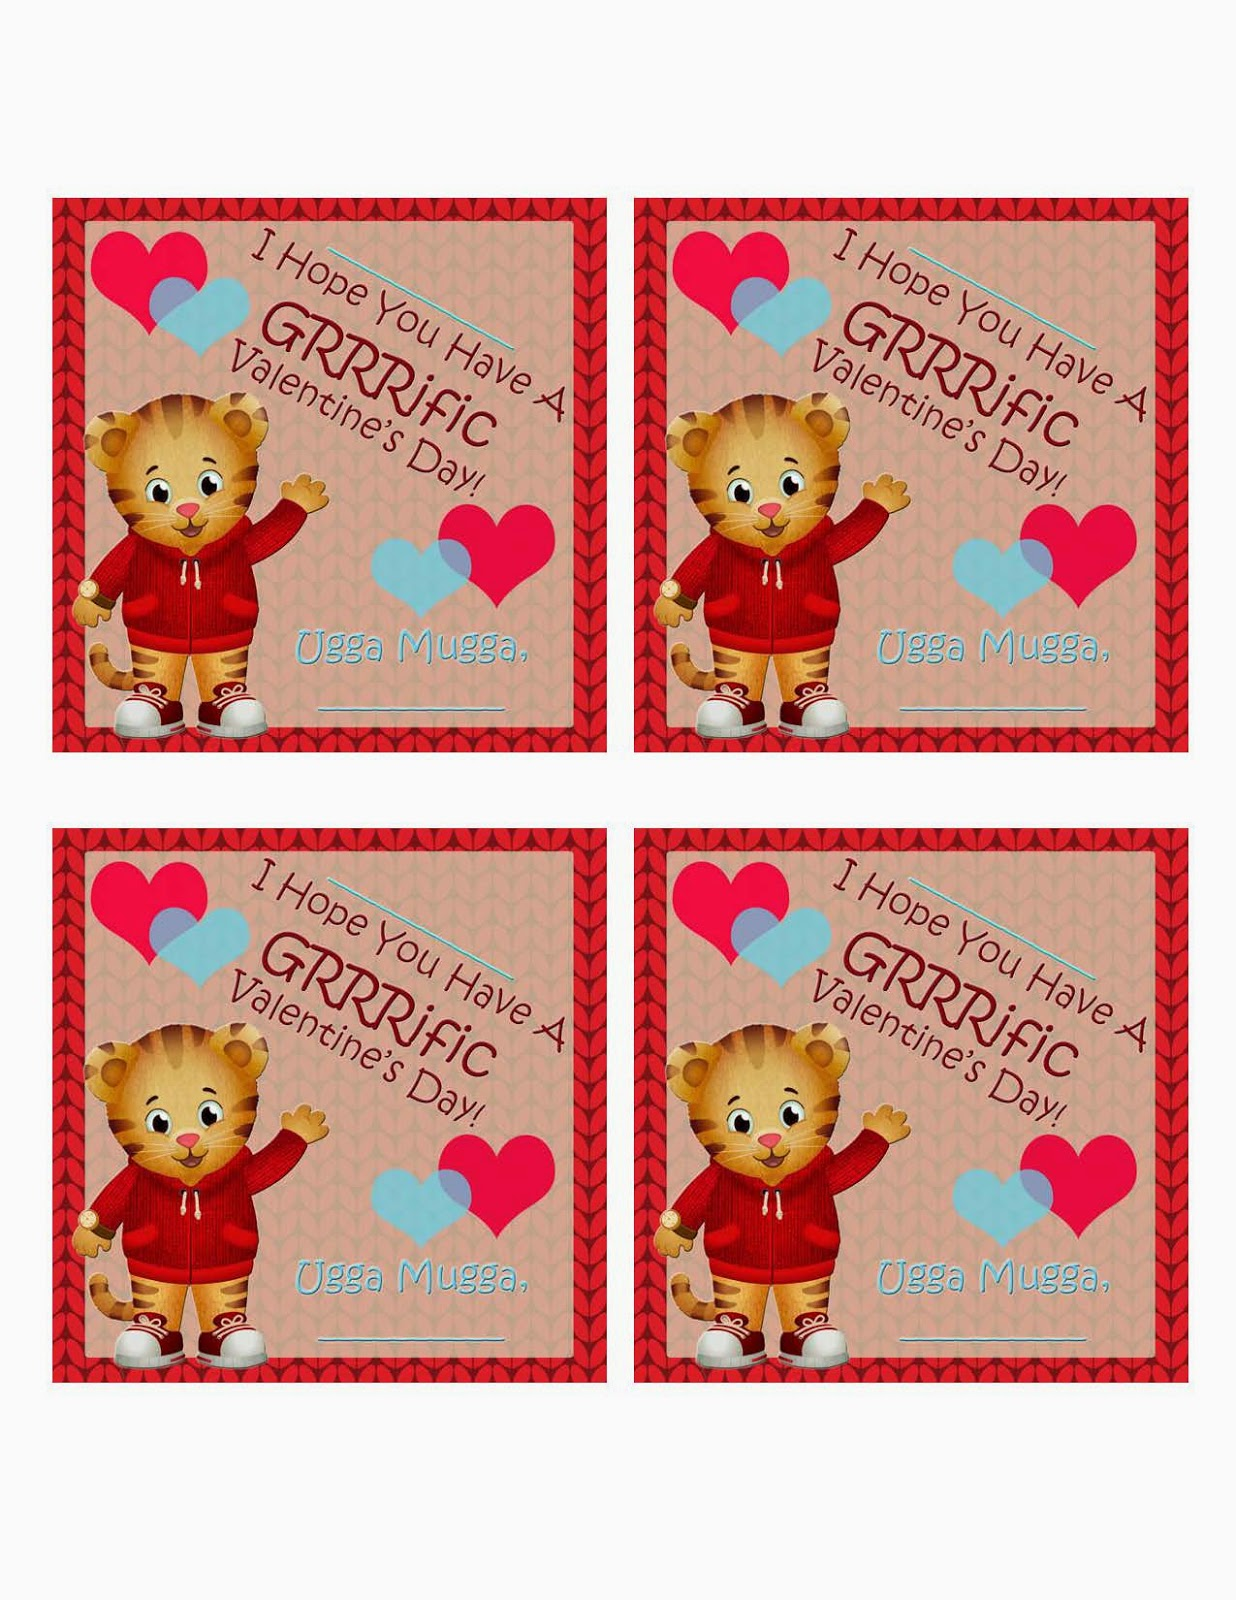 Click HERE To Print Your Daniel Tiger Valentines: